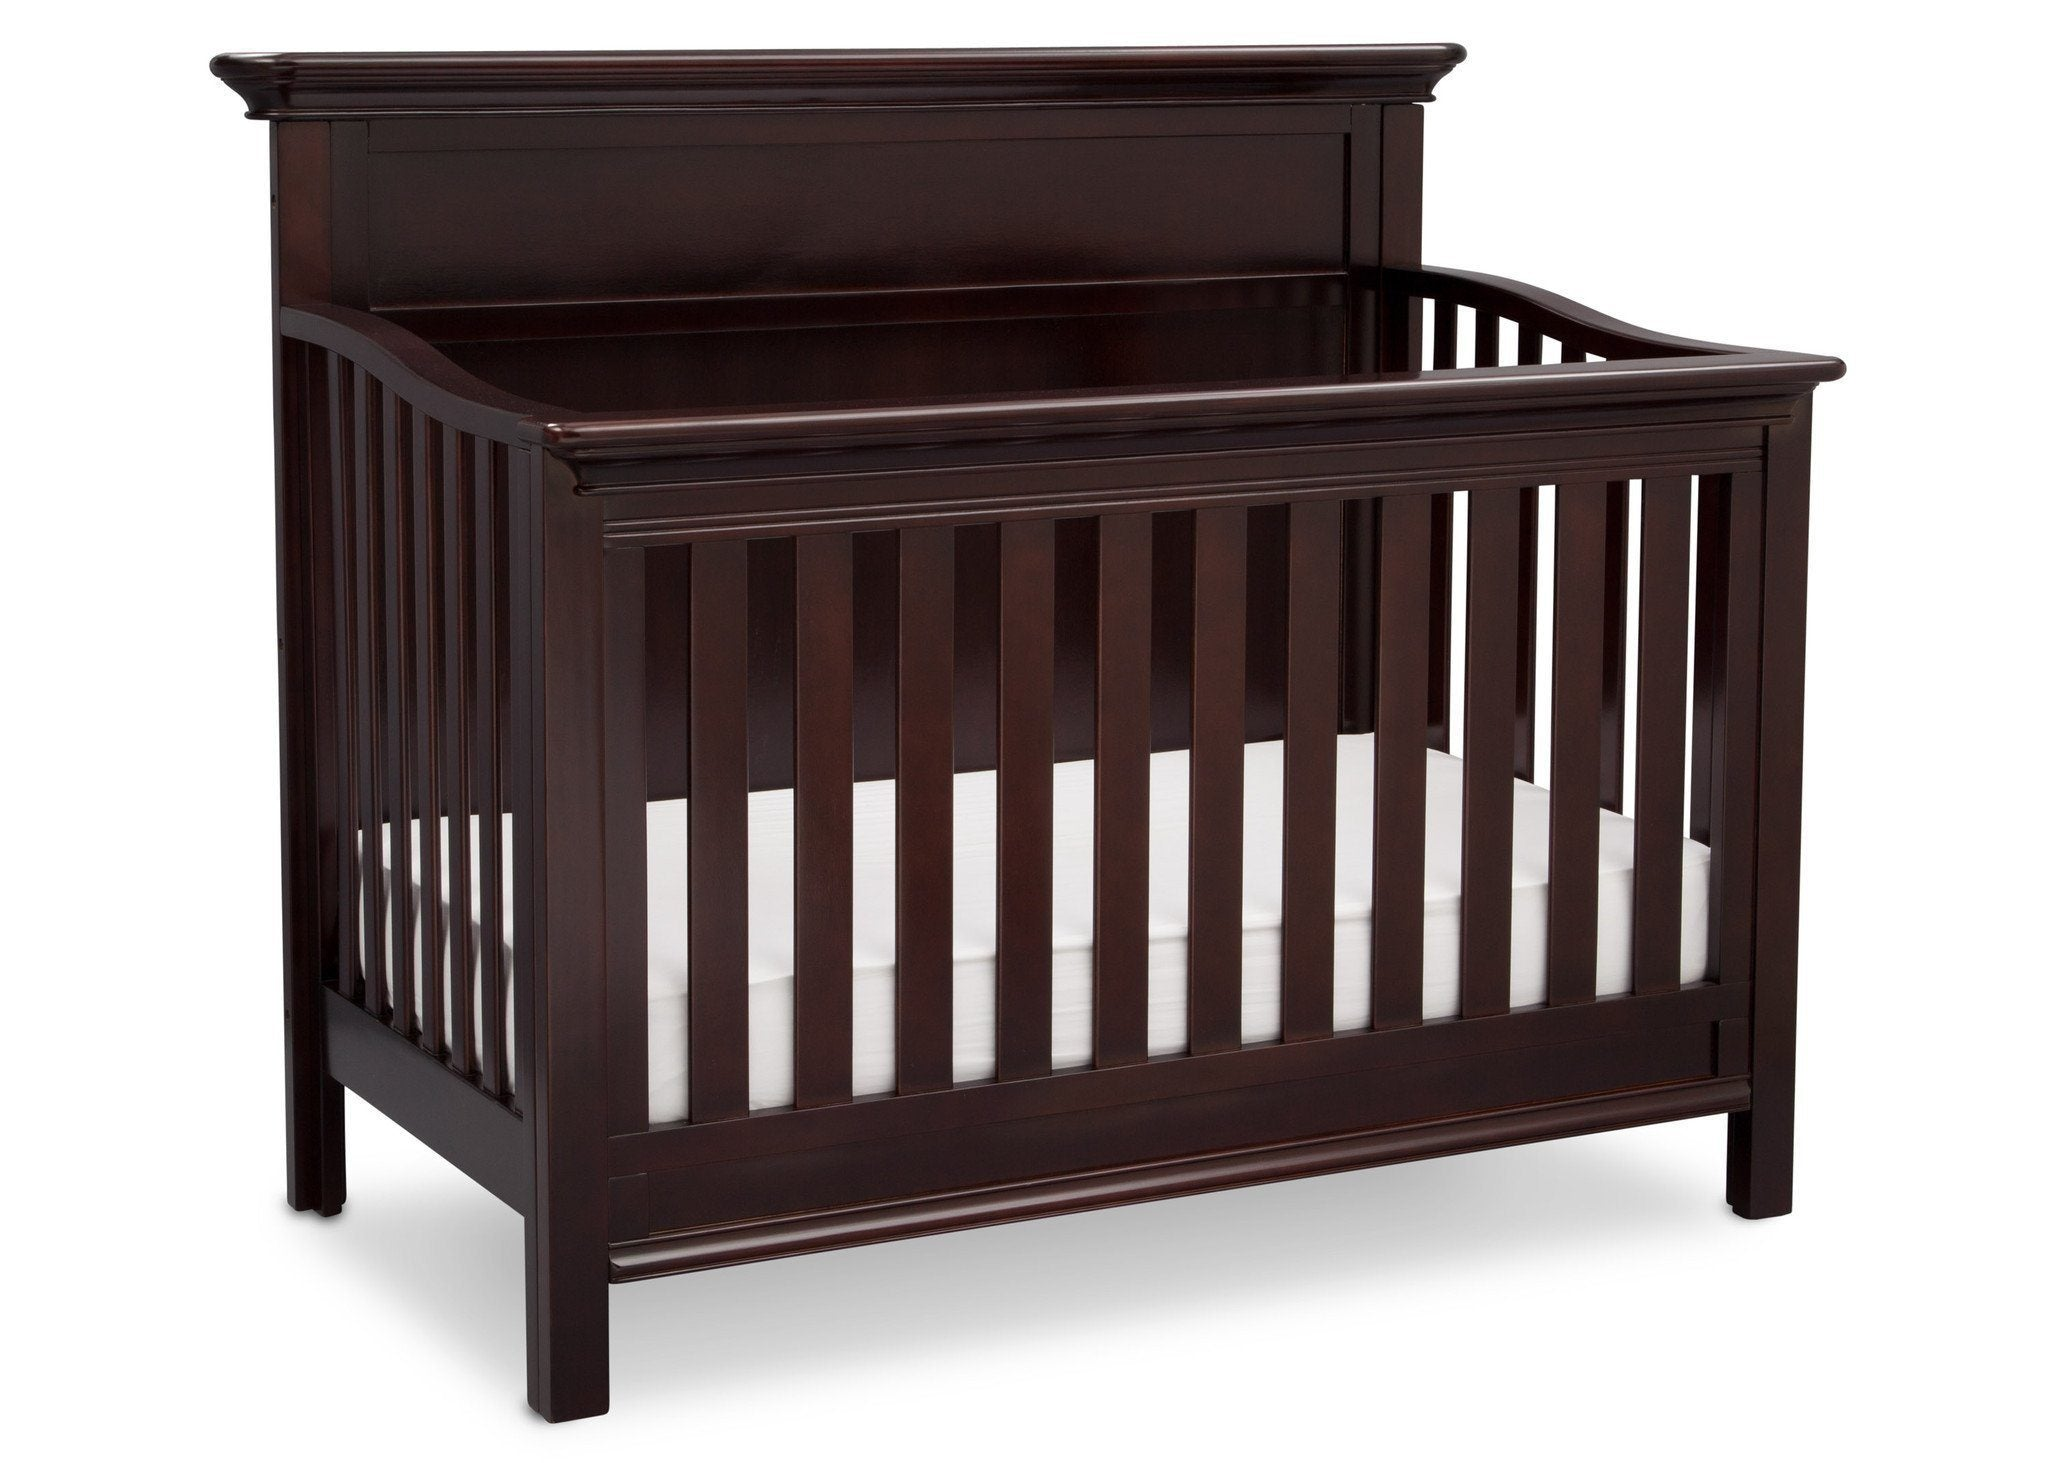 Serta Dark Chocolate (207) Fairmount 4-in-1 Crib, Side View with Crib Conversion c4c